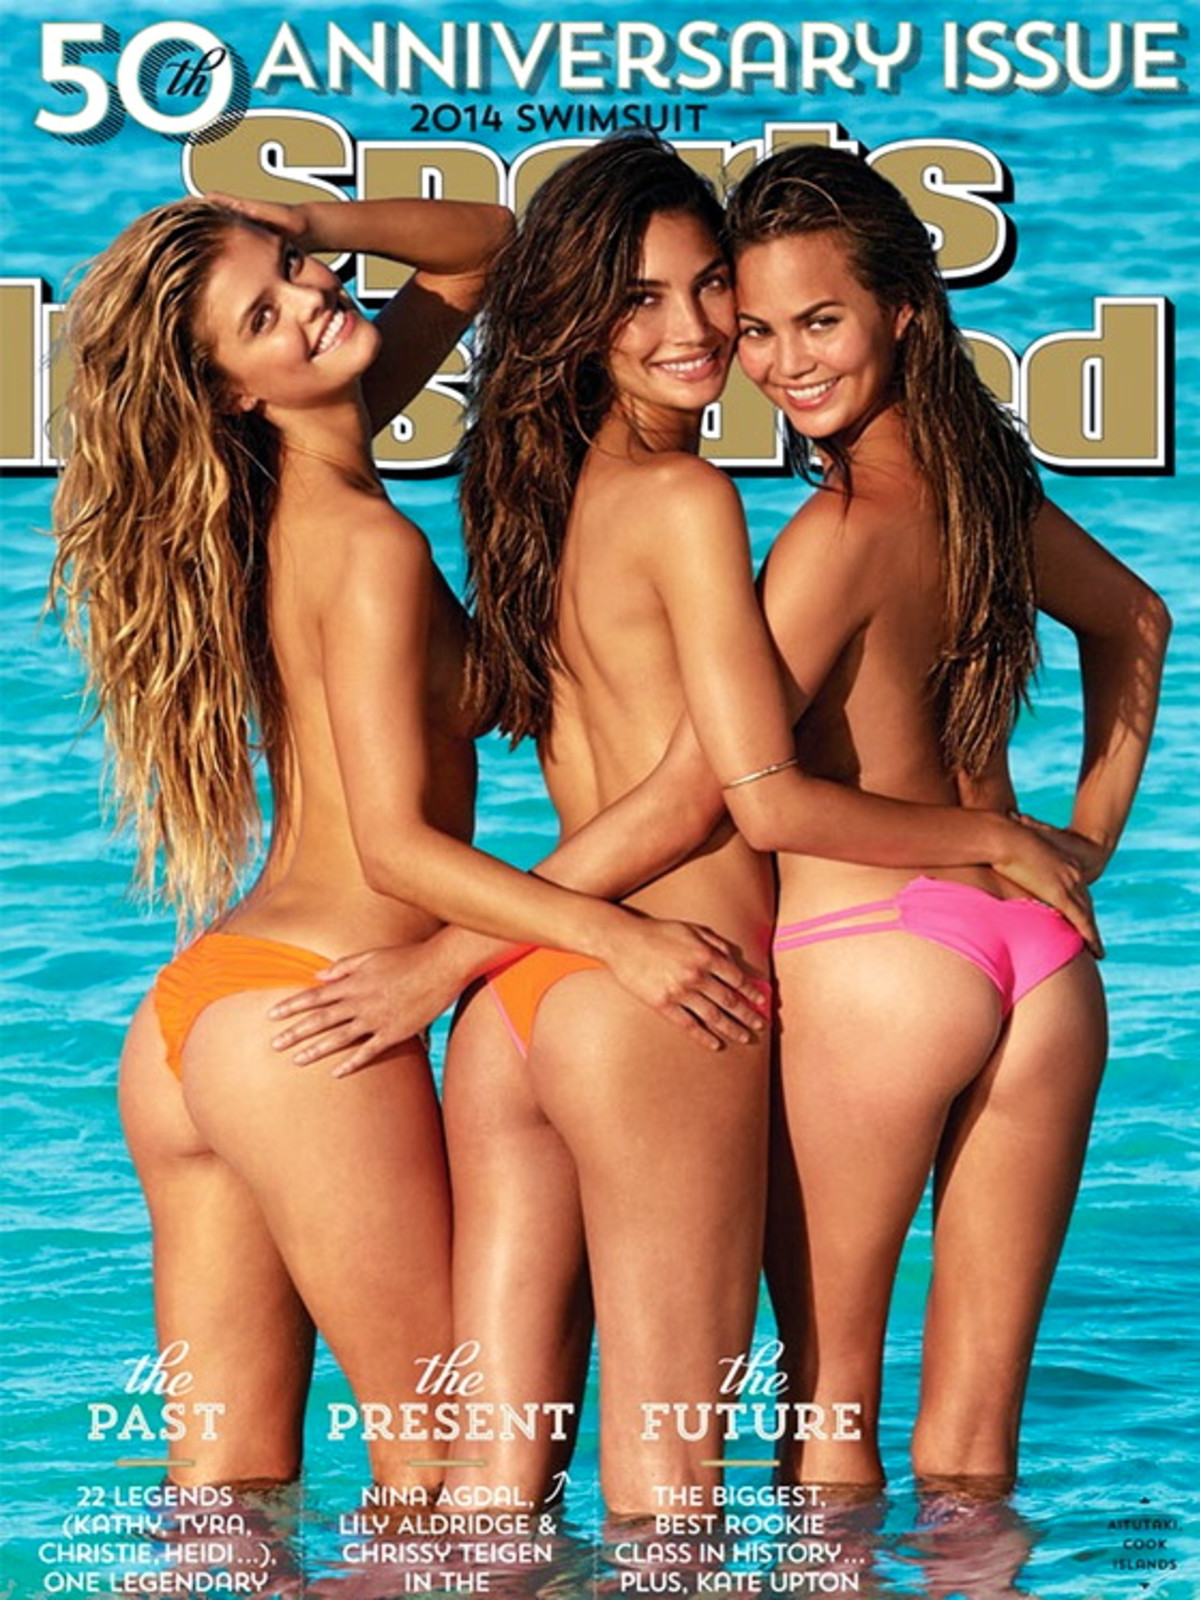 fcad65ccb7 Houston, Chrissy Teigen, July 2015, 2014 Sports Illustrated Swimsuit cover